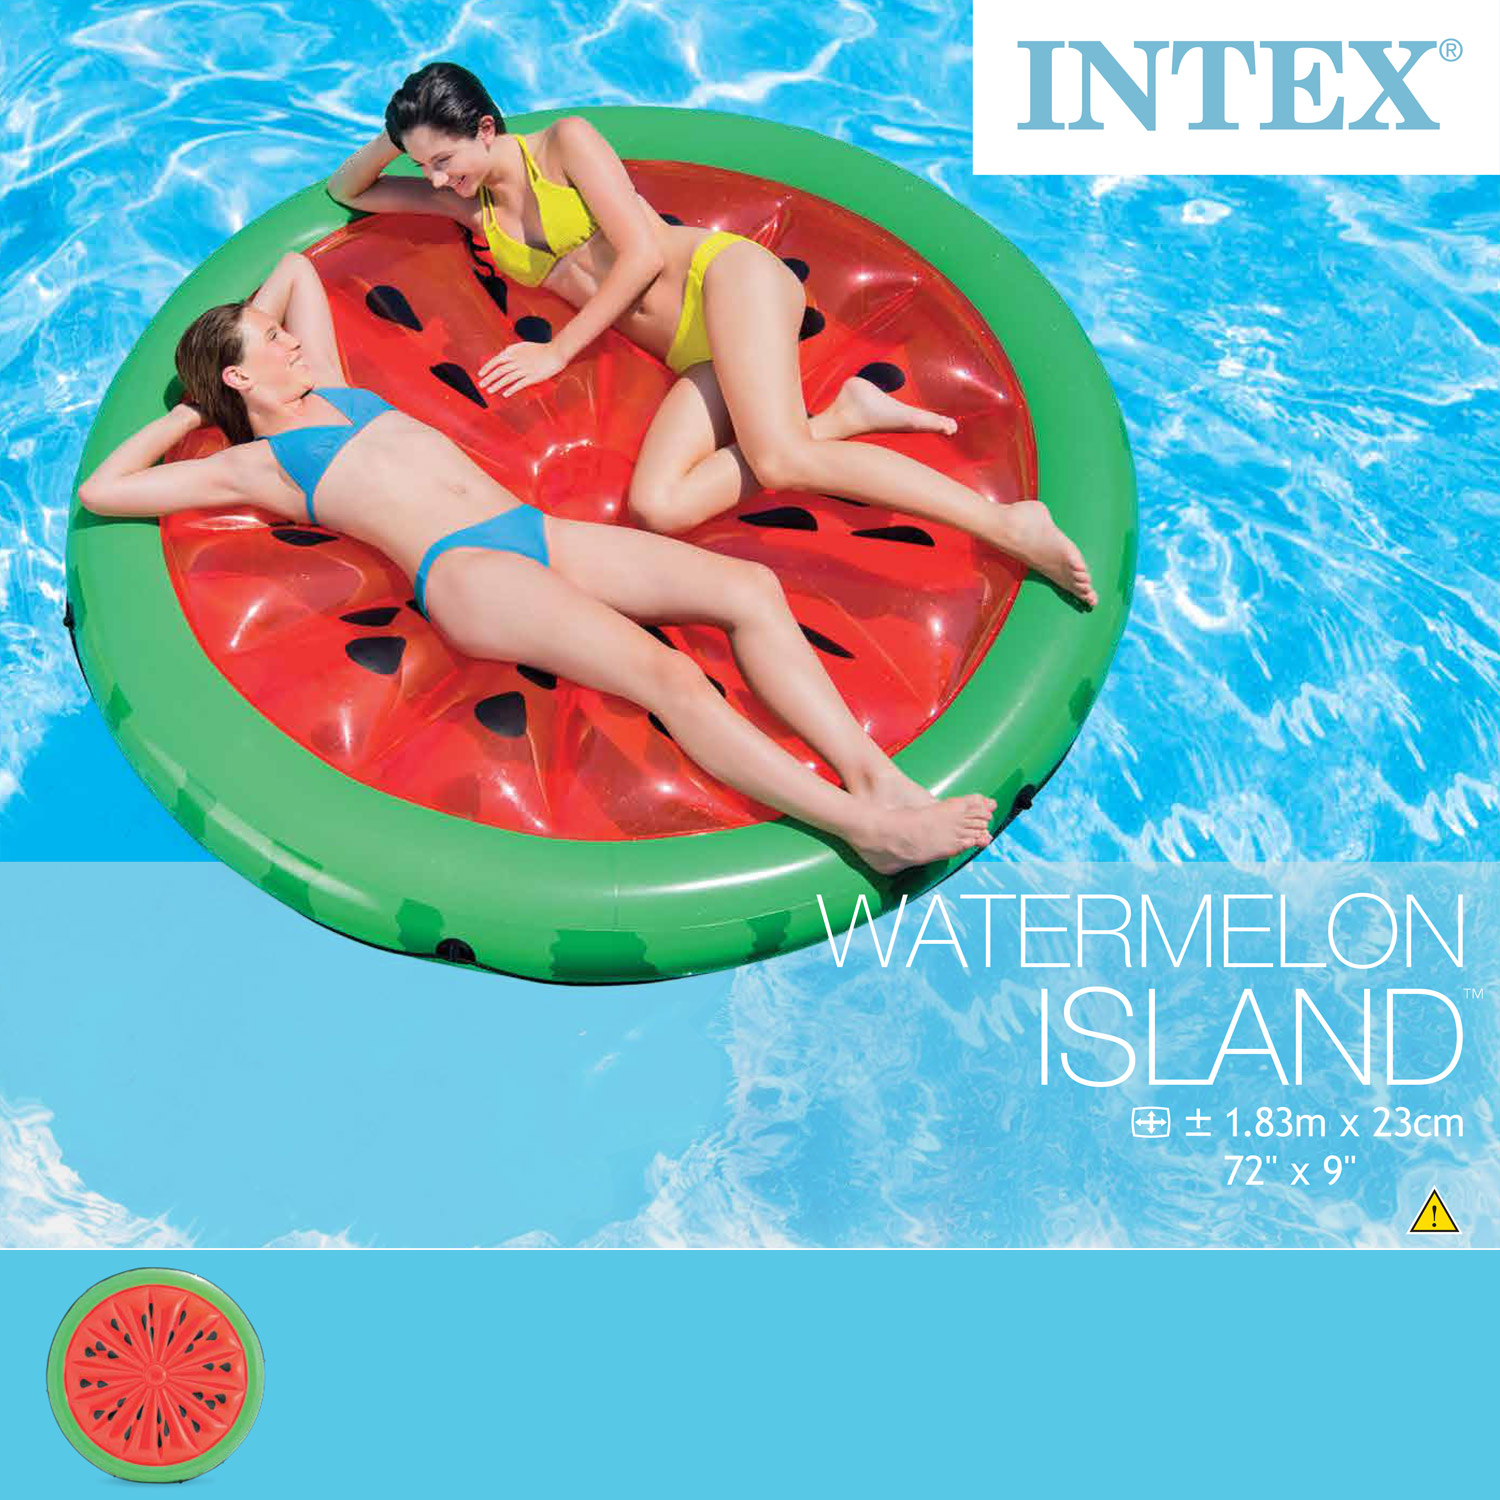 intex schwimmliege pool liege sessel lounge wasserliege badeinsel luftmatratze ebay. Black Bedroom Furniture Sets. Home Design Ideas